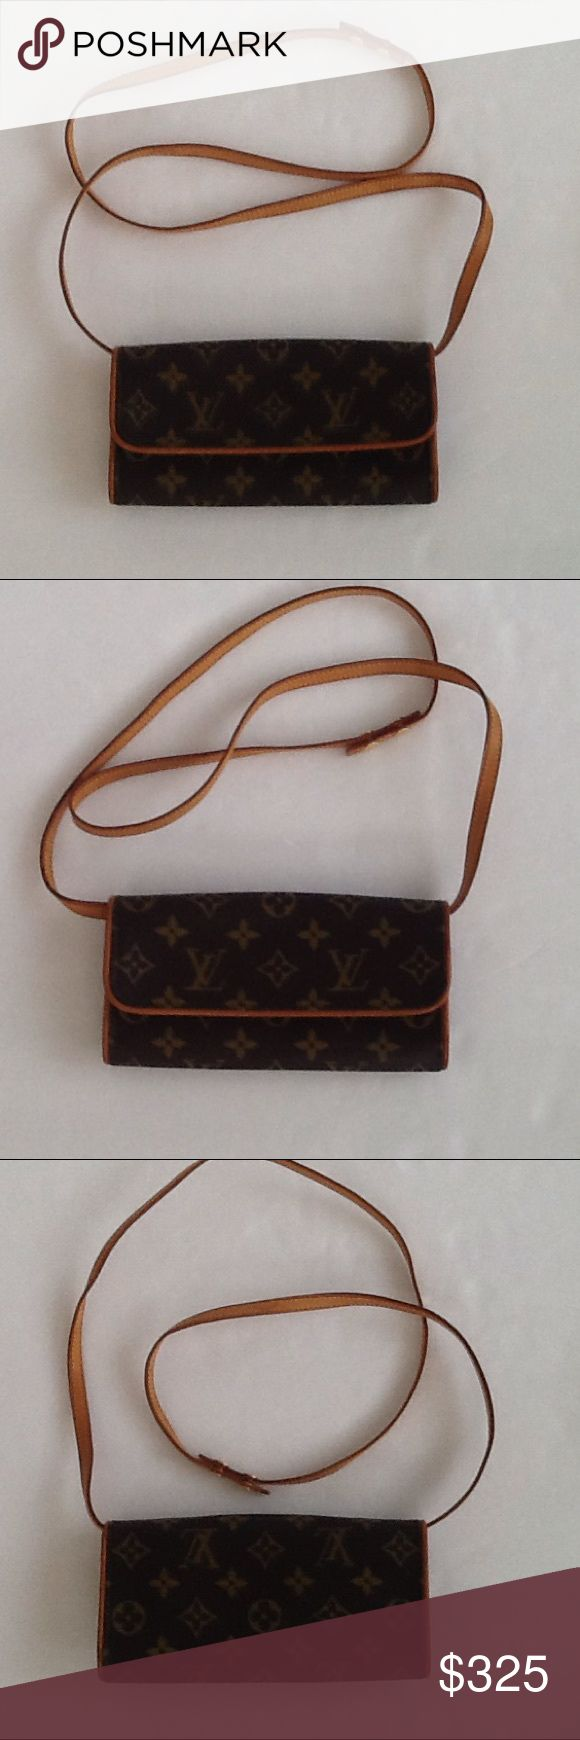 Authentic Louis Vuitton Twin Pochette Monogram Bag The bag is in a good ondition. The canvas and leather showed very light of wearing. The bag was made in Soain. The date code CA 0999. The dimension is 3.5, 7 and 1. The bag came with a dust cover bag. Louis Vuitton Bags Crossbody Bags